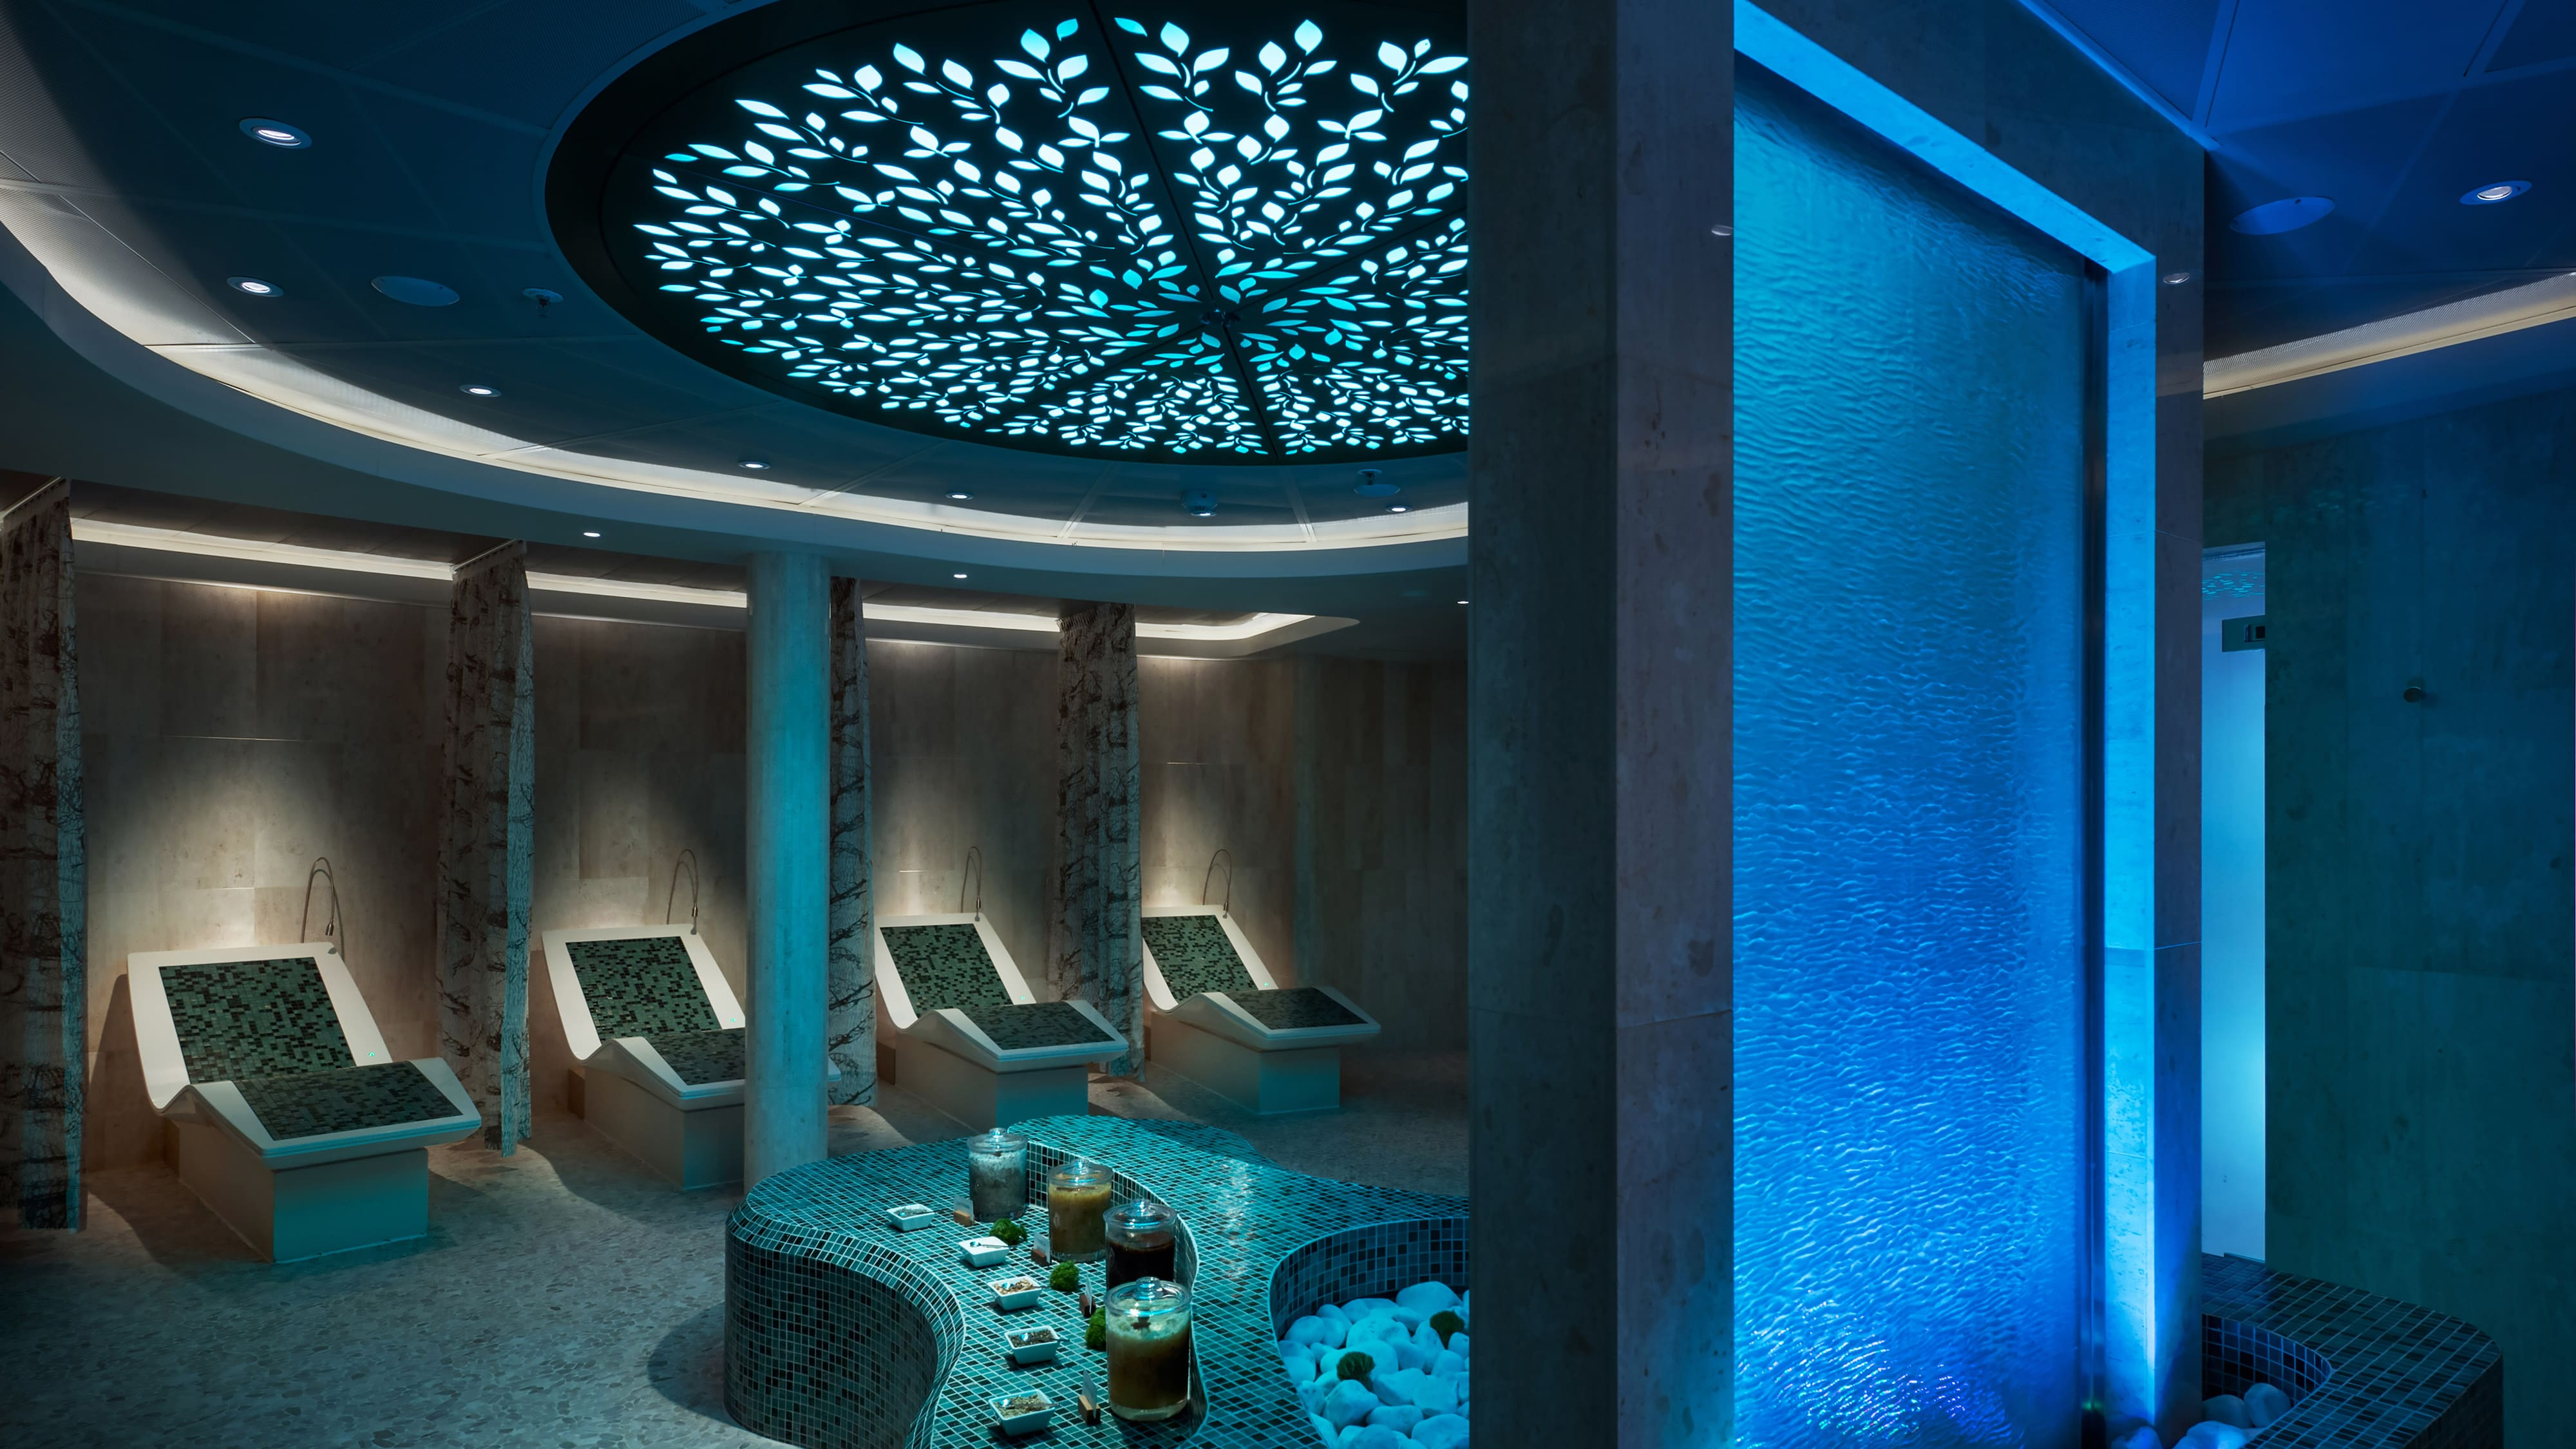 A spa with a fountain, seats and candles